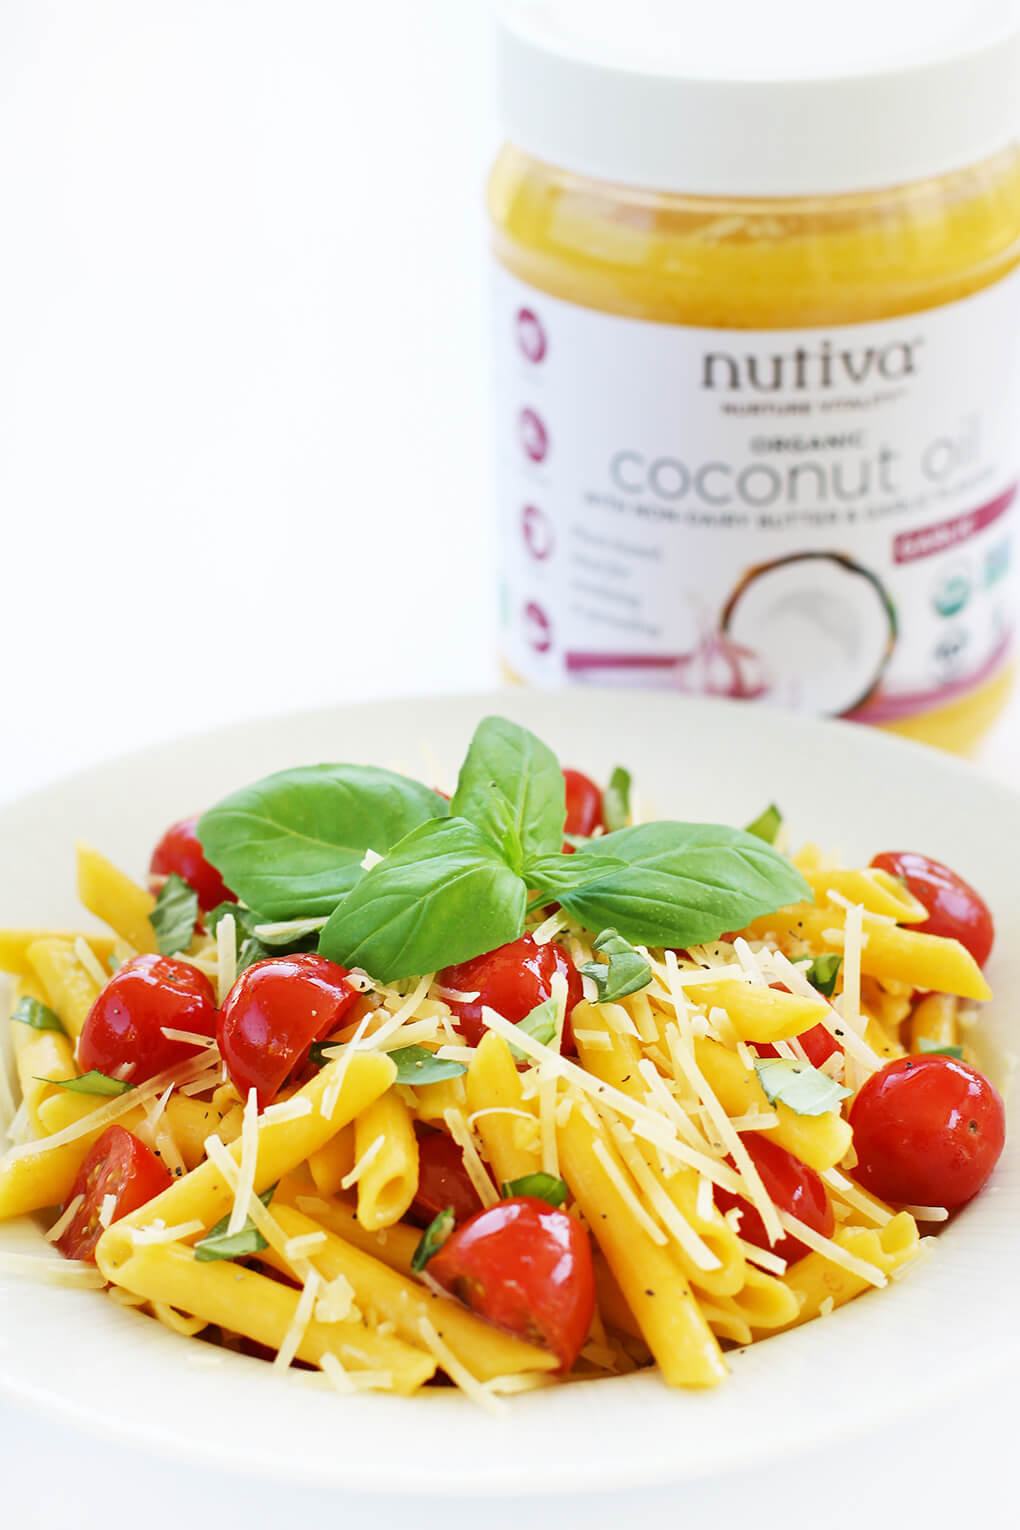 Gluten Free Recipe Roundup Six sarahkayhoffman.com Fresh Tomato Basil Penne Pasta Nutiva Nutiva Organic Buttery Coconut Oil with Non-Dairy Butter and Garlic Flavors